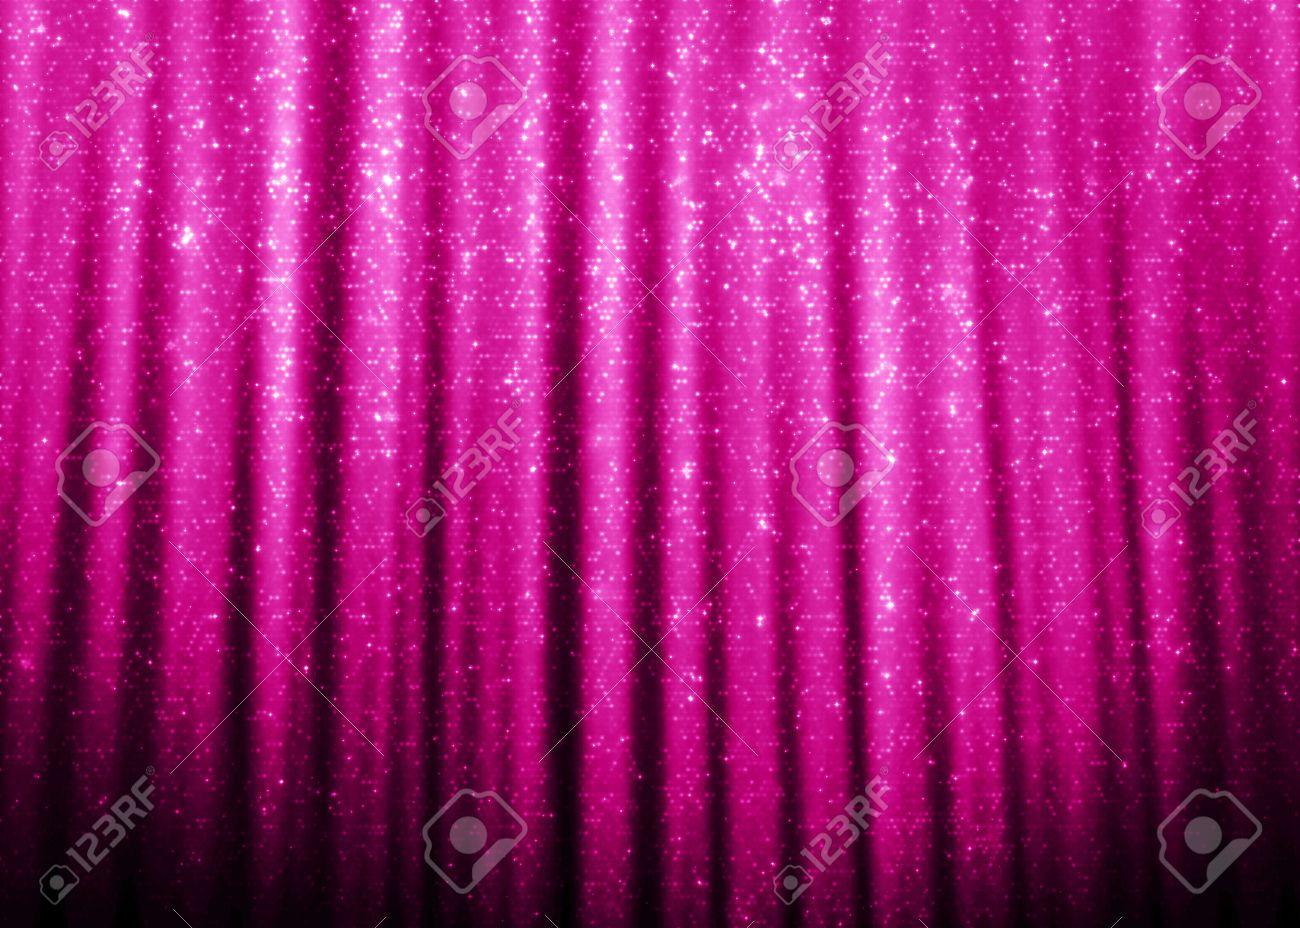 Pink Sparkle Glitter Curtains Background Stock Photo